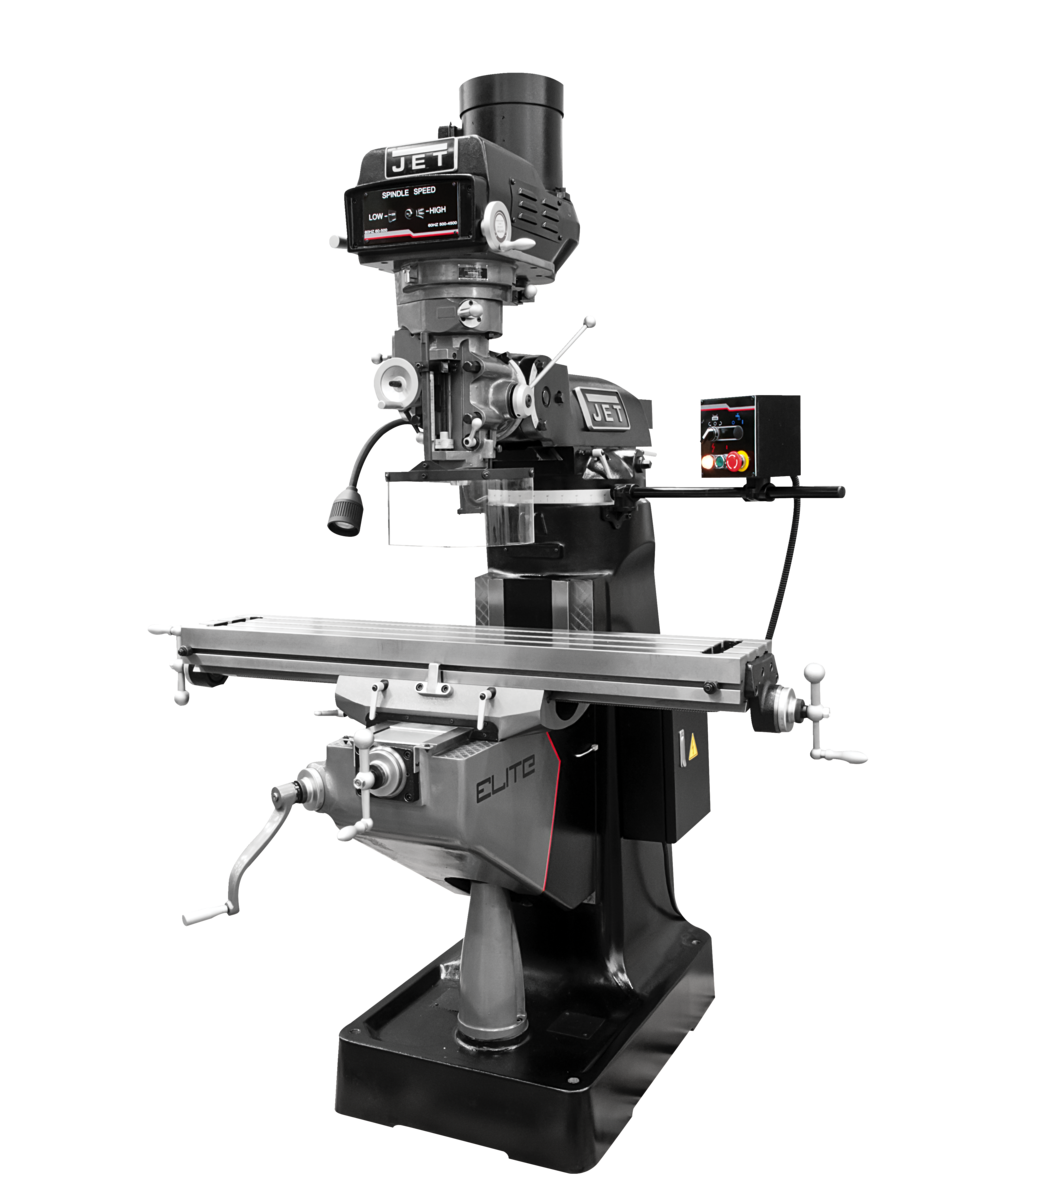 ETM-949 Mill with 3-Axis Newall DP700 (Knee) DRO and Servo X, Y, Z-Axis Powerfeeds